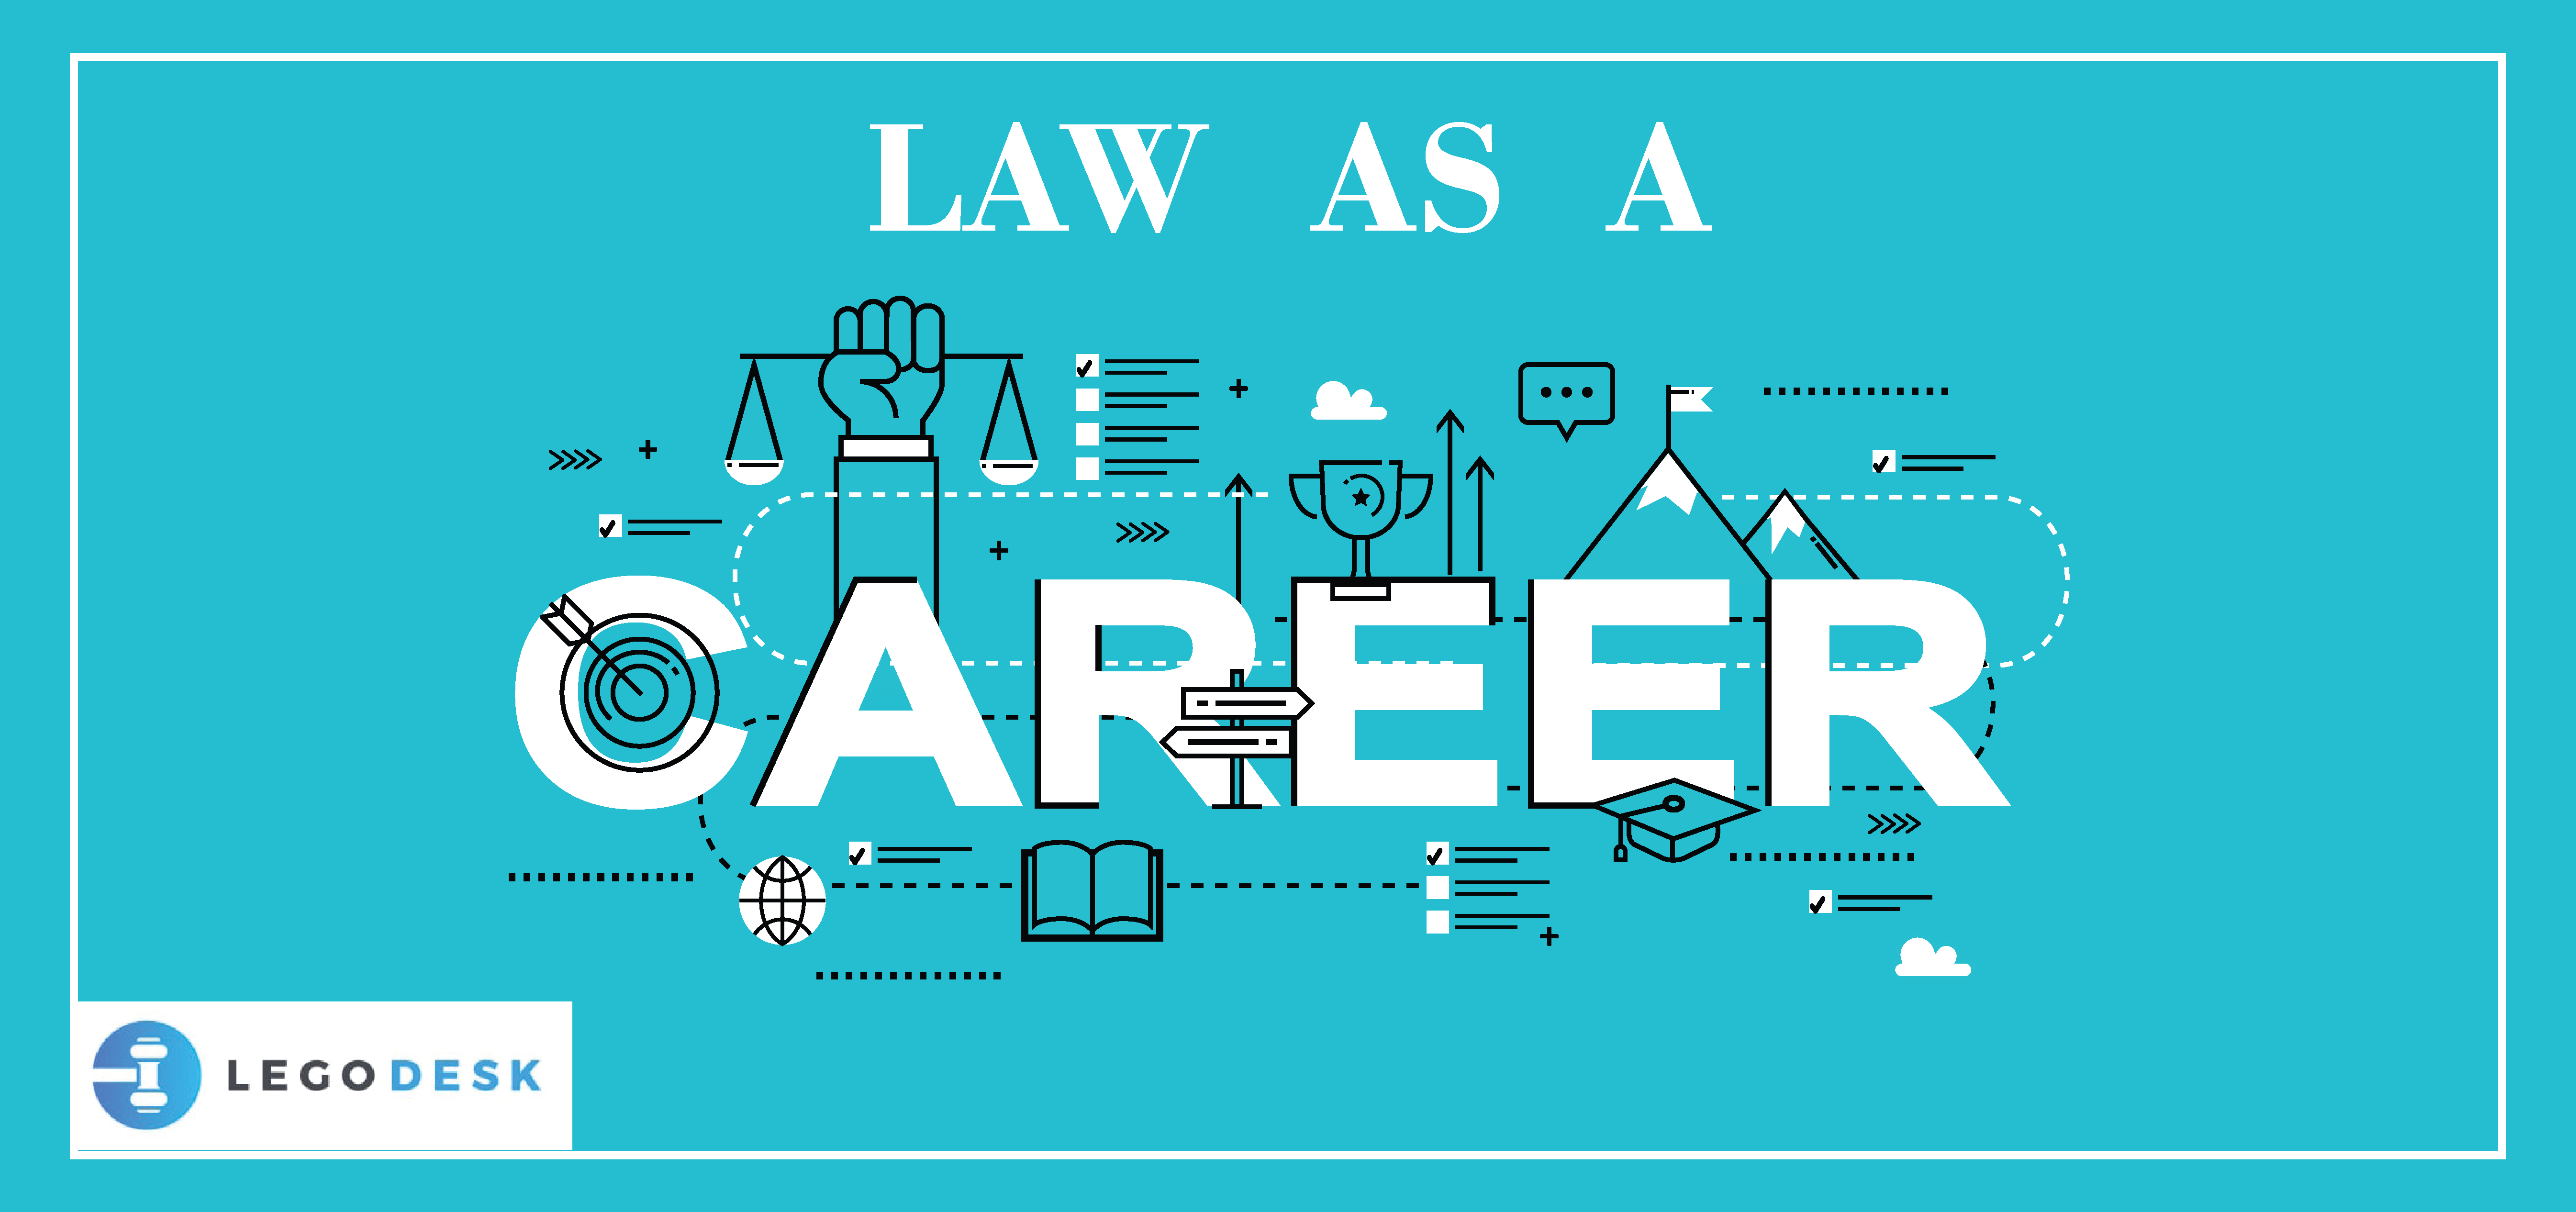 Law as a career in 2020